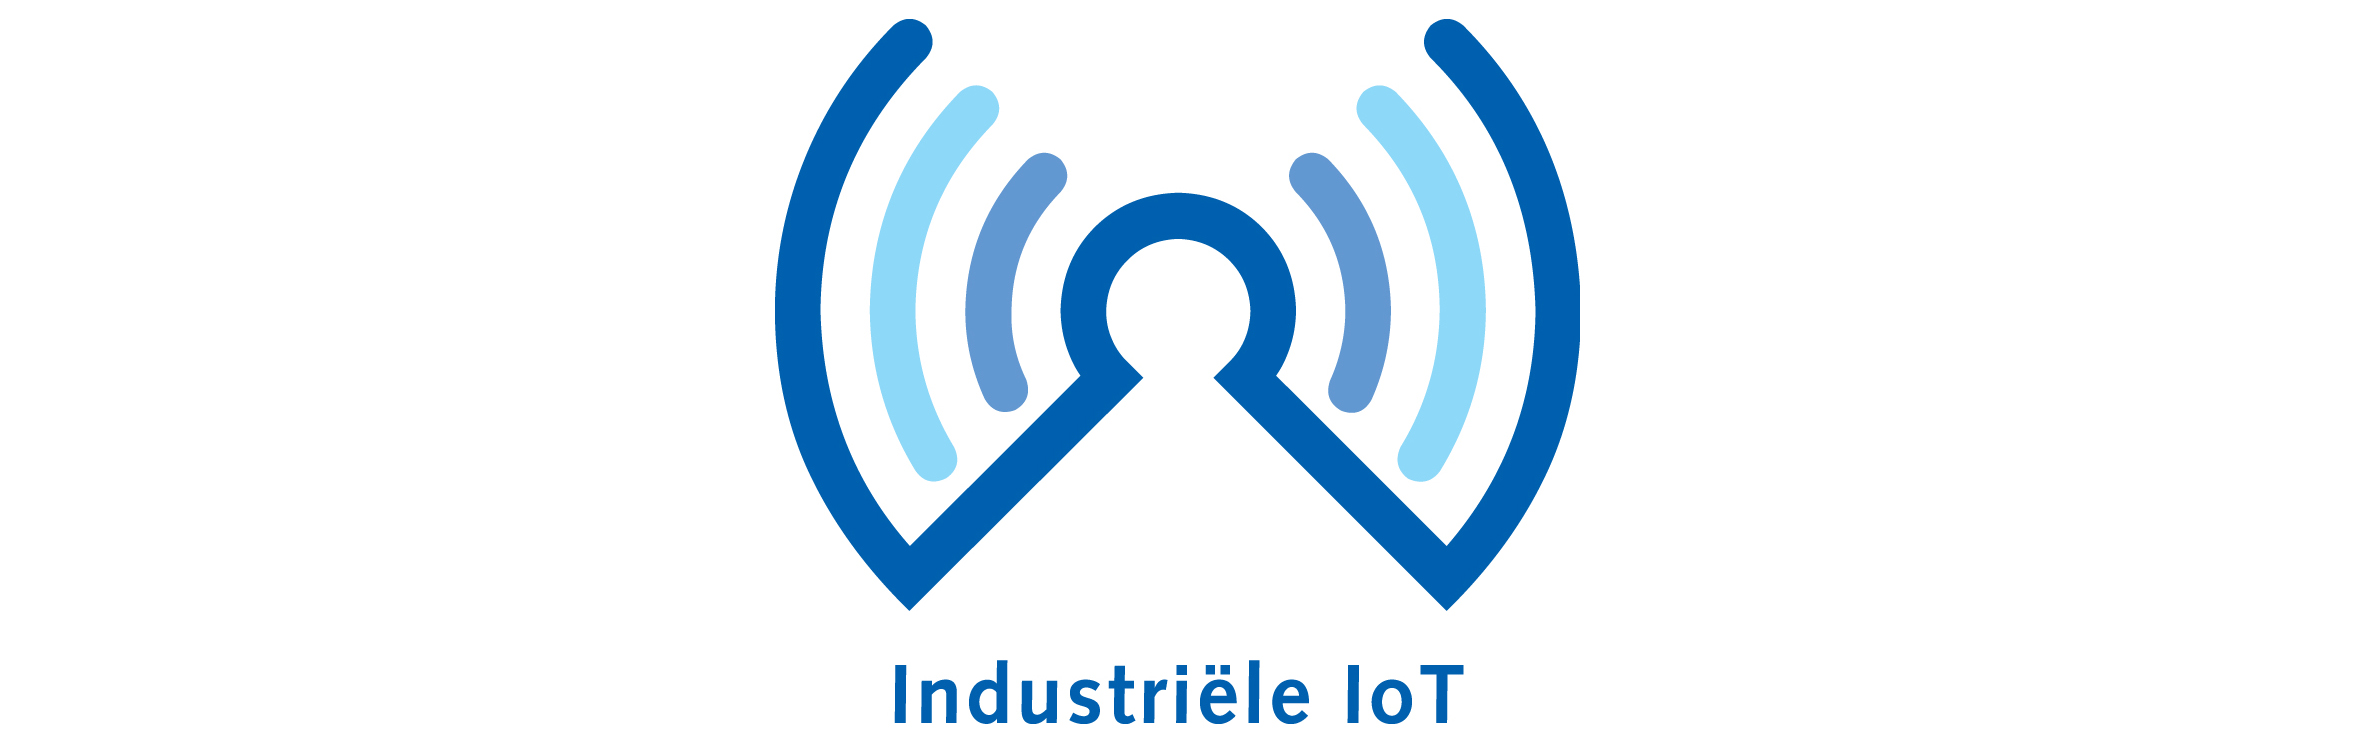 Industriële IoT | Pushing the limits of communication technology | MCS